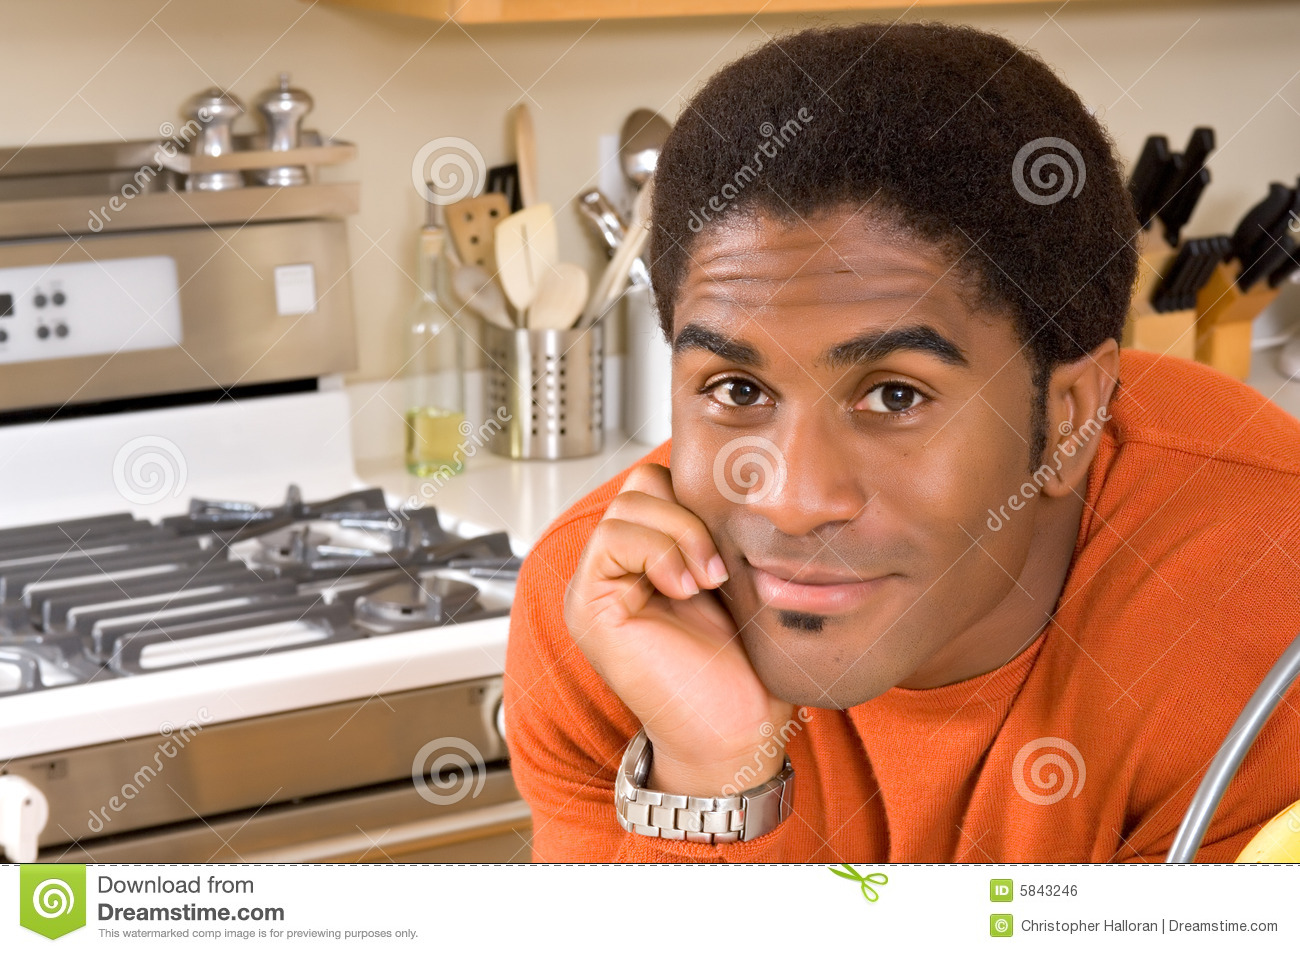 Handsome African-American man in kitchen